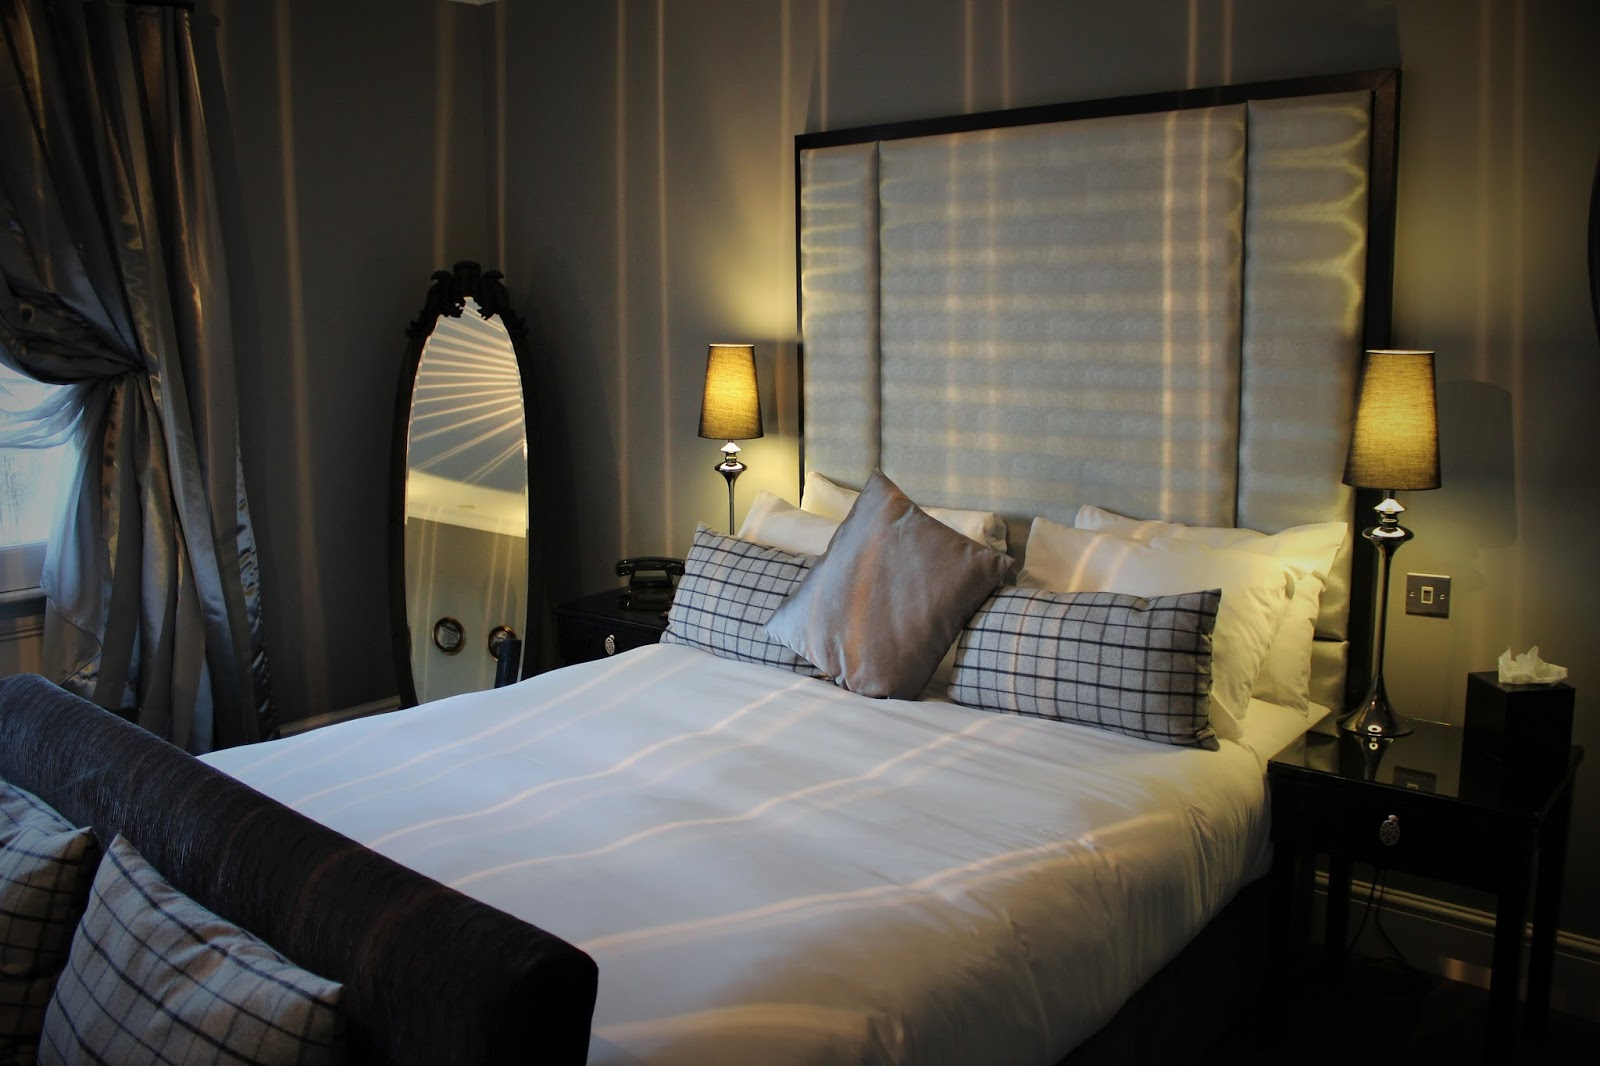 Poets House Hotel, Ely, Cambridgeshire - Rooms